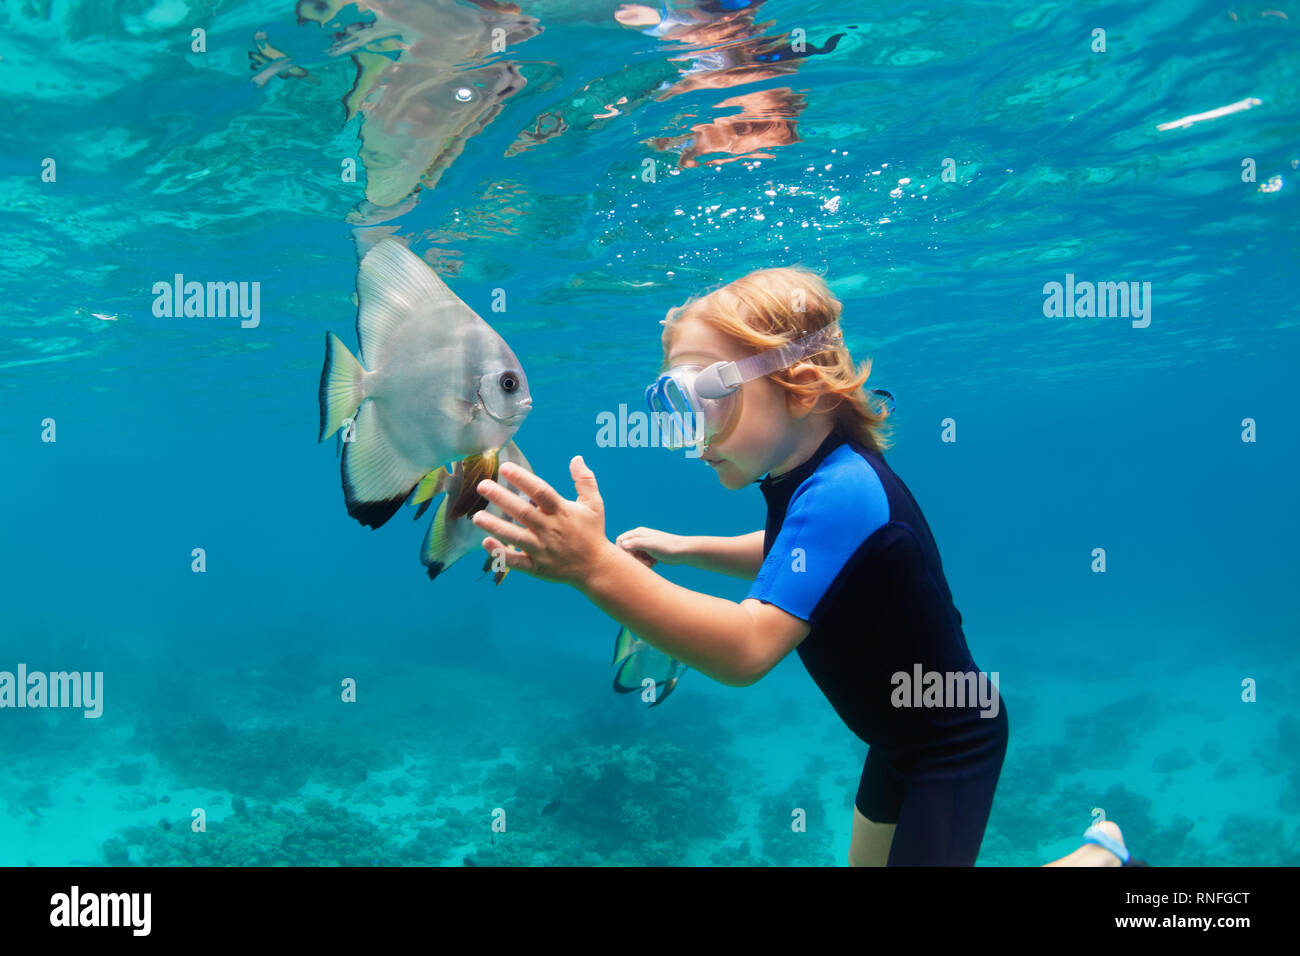 Happy family - active kid in snorkeling mask dive underwater, see tropical fish Platax ( Batfish ) in coral reef sea pool. Travel swimming adventure - Stock Image